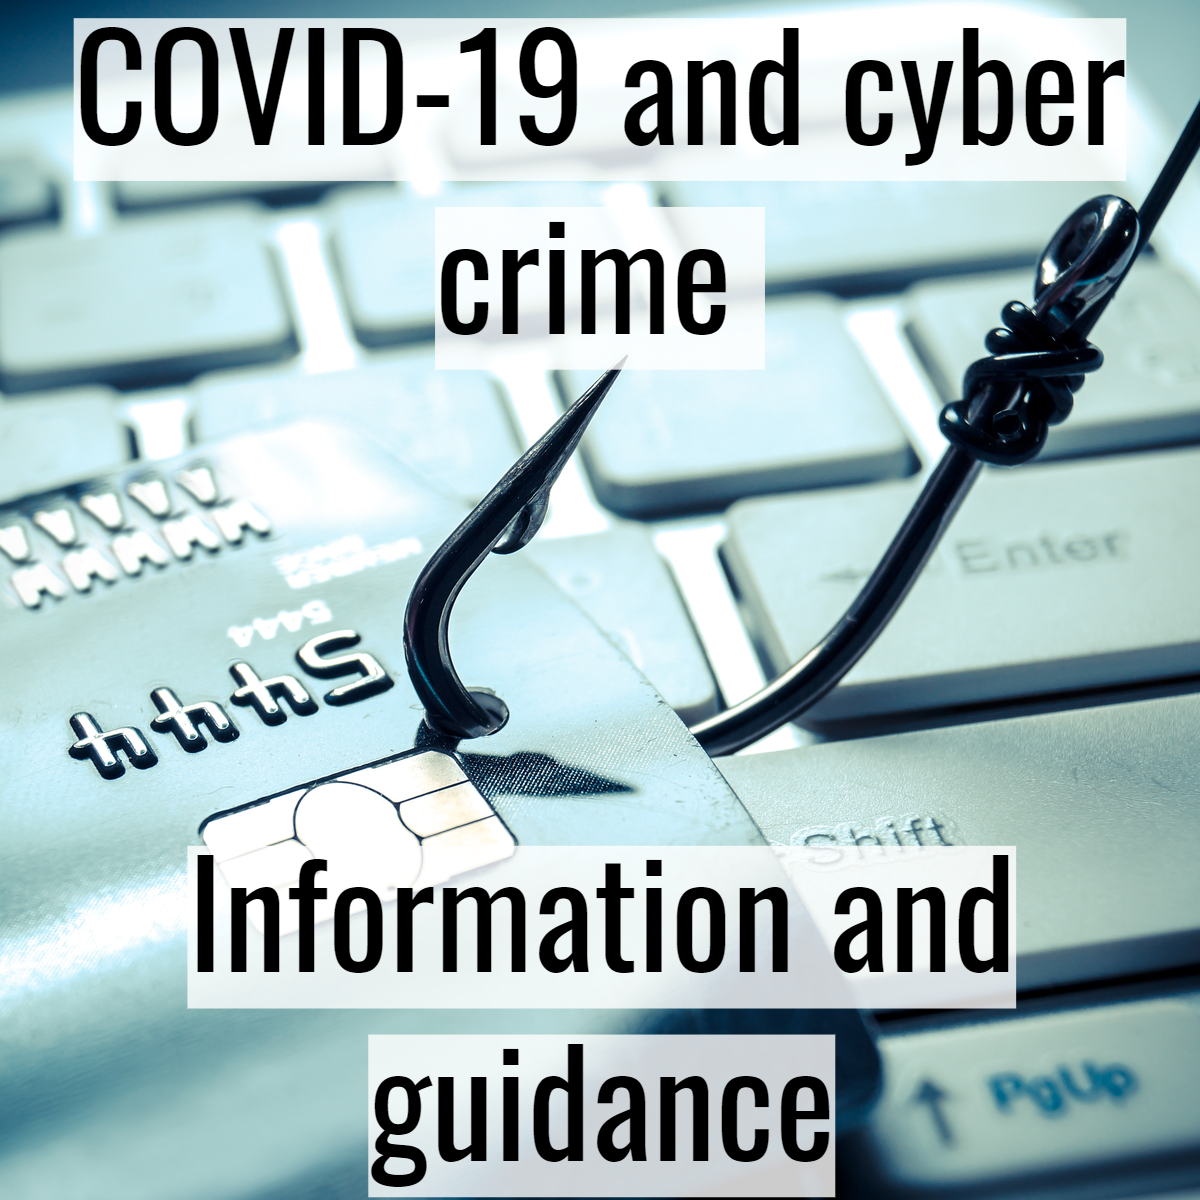 image-COVID 19 and cyber crime.png